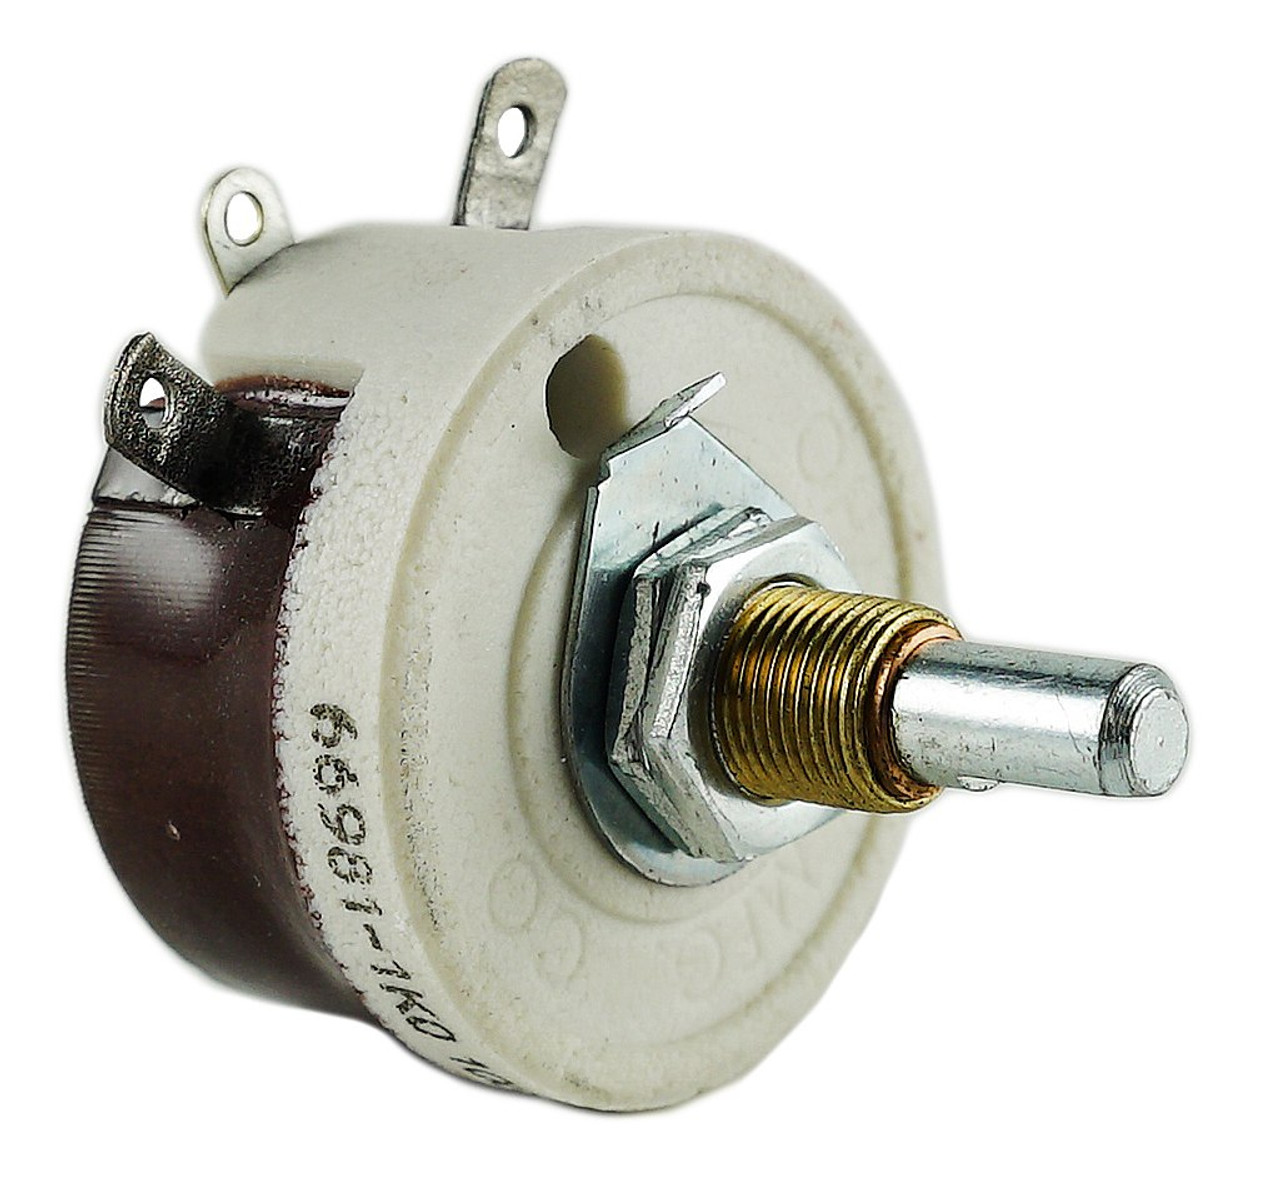 1000 Ohm Rheostat for Rainbowair Models 5401, 5200, 5210 and Queenaire Storm, Tornado, Cyclone and Hurricane